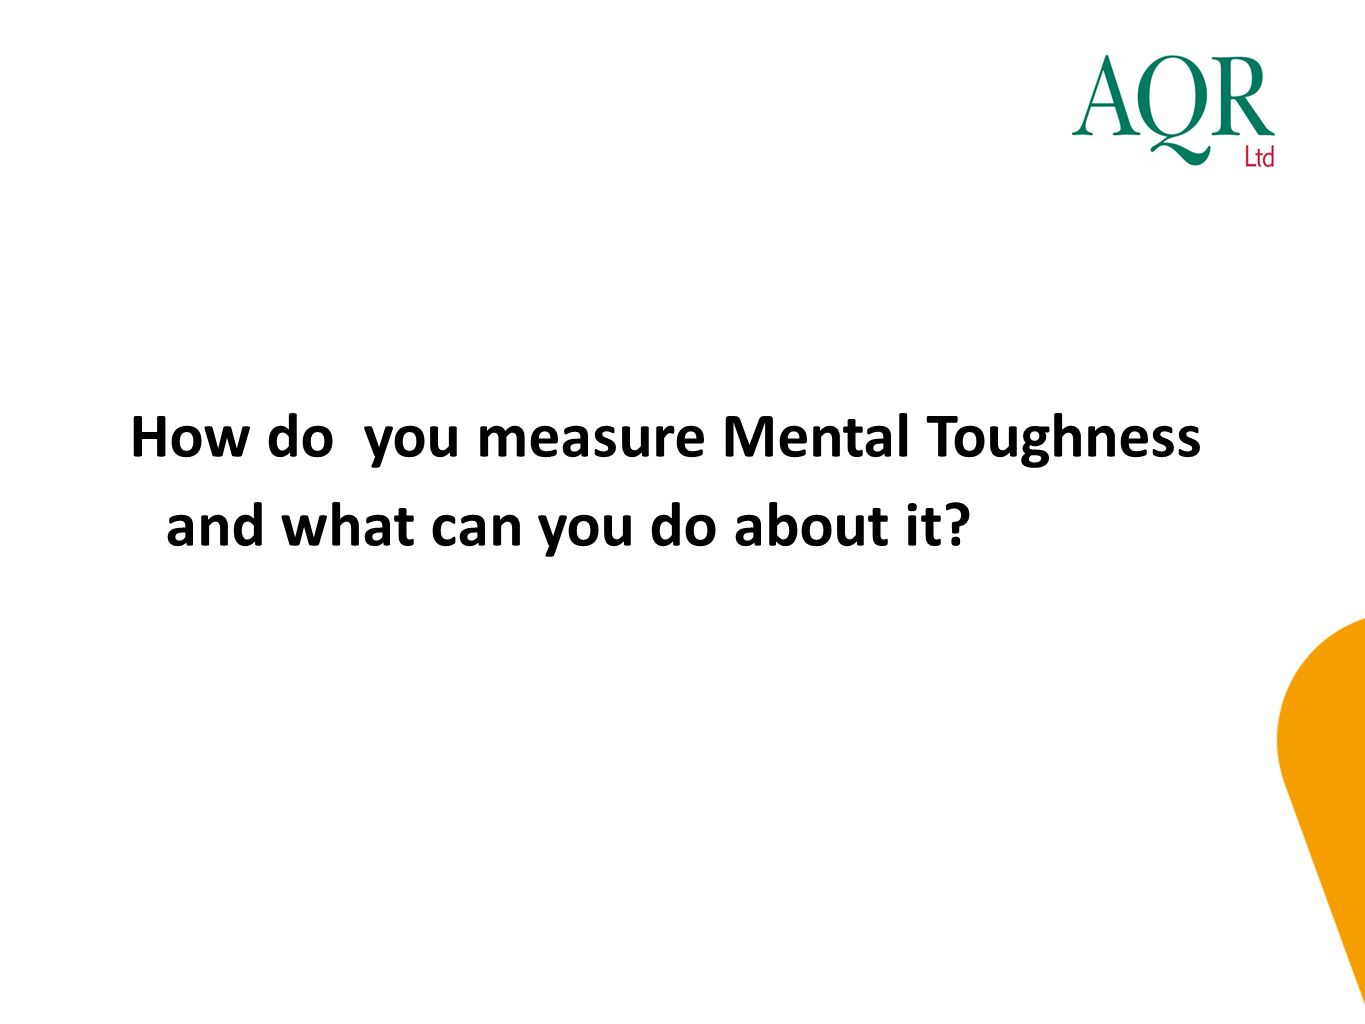 How do you measure Mental Toughness and what can you do about it